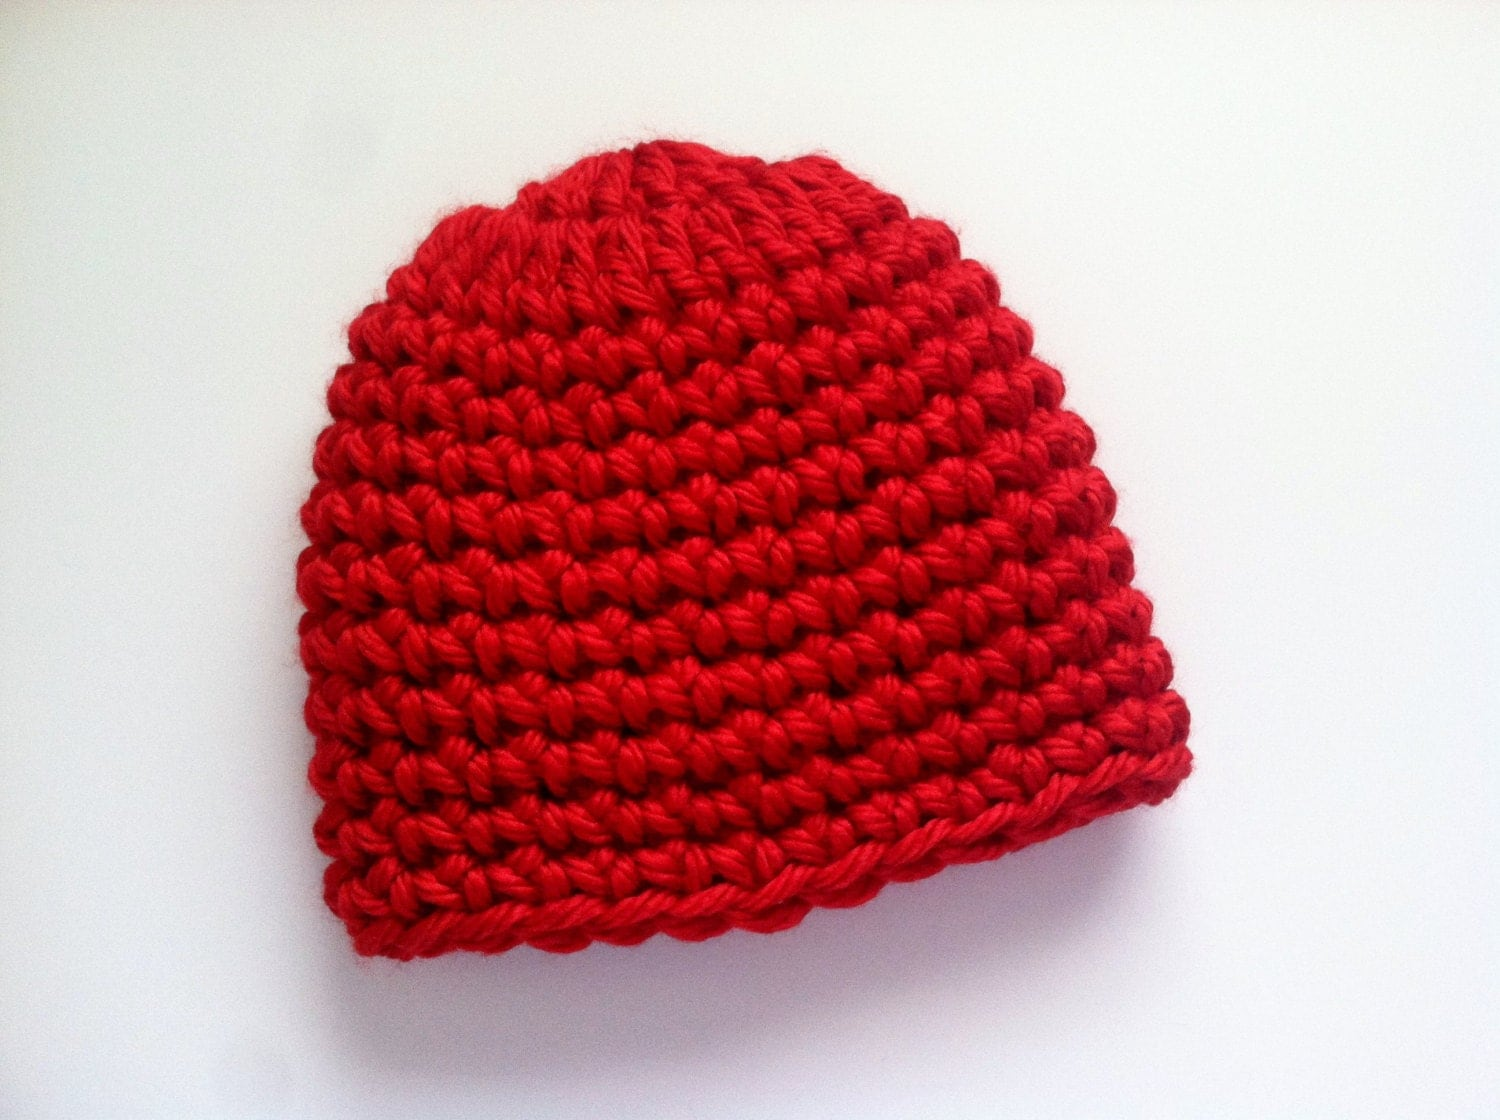 Crochet Baby Hat Pattern With Super Bulky Yarn : Super Bulky Crocheted Hat Chunky Red Beanie Handmade Skull